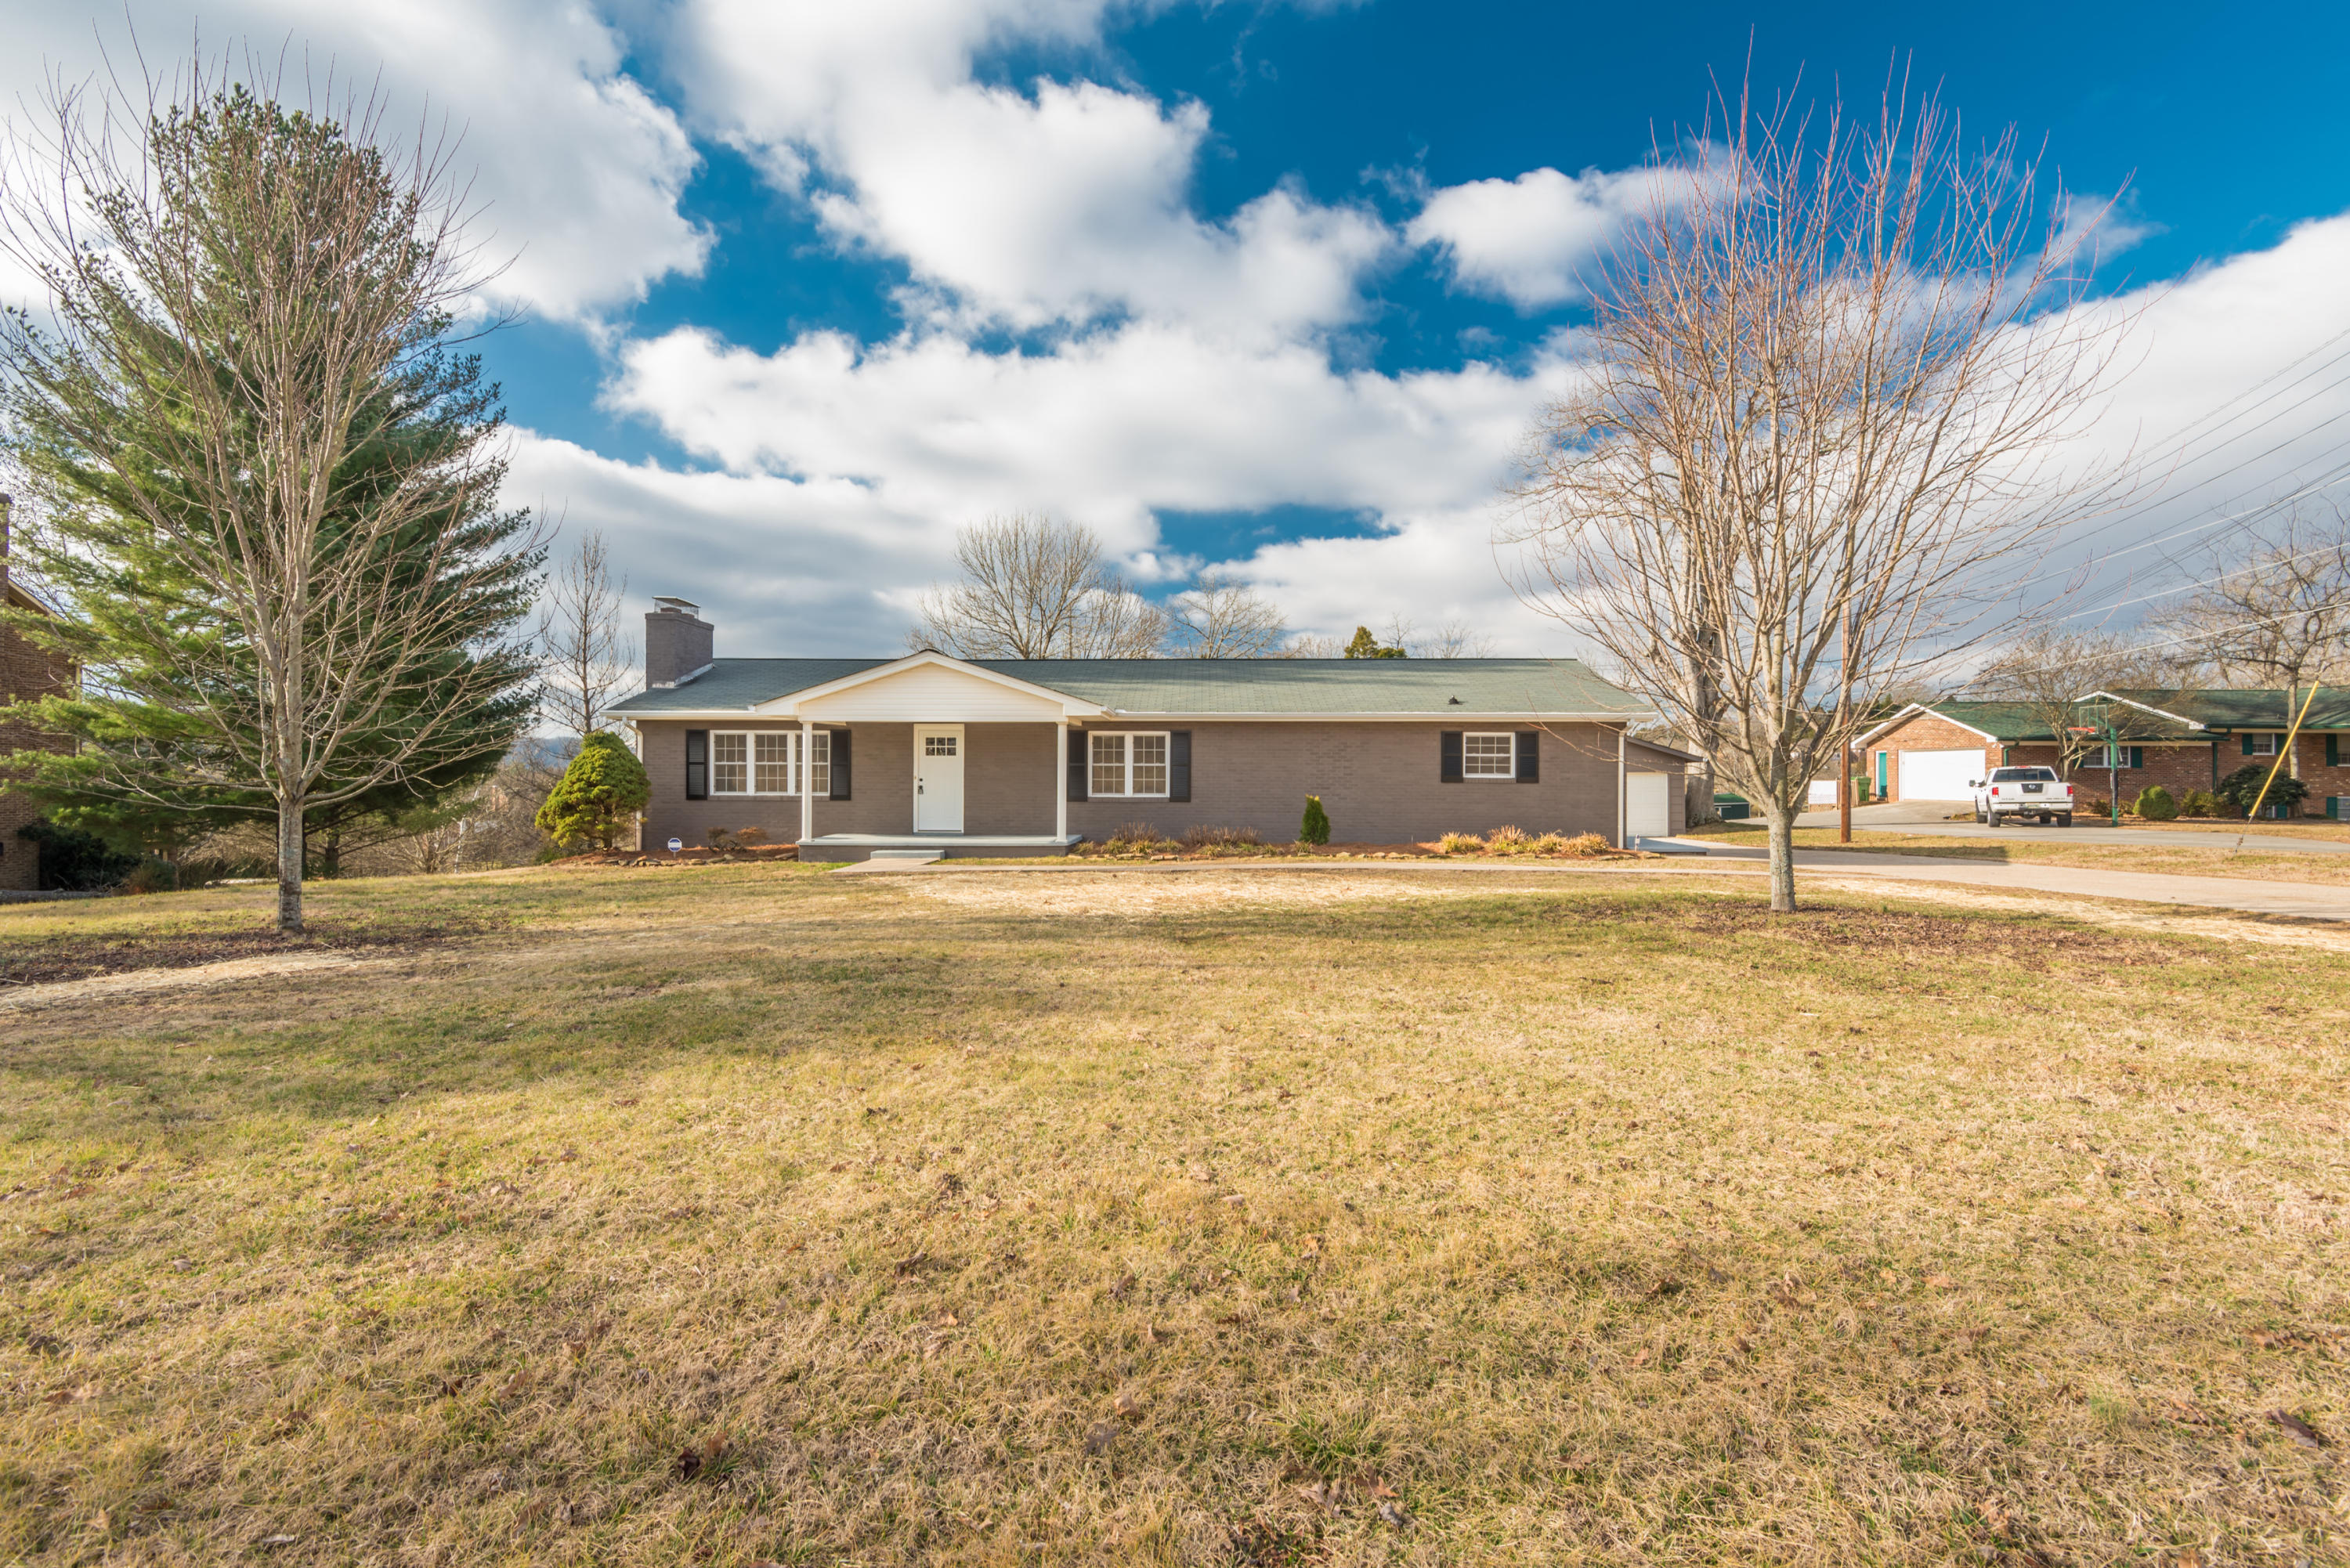 7517 Mayes Chapel Rd, Knoxville, Tennessee 37938, 4 Bedrooms Bedrooms, ,3 BathroomsBathrooms,Single Family,For Sale,Mayes Chapel,1029138